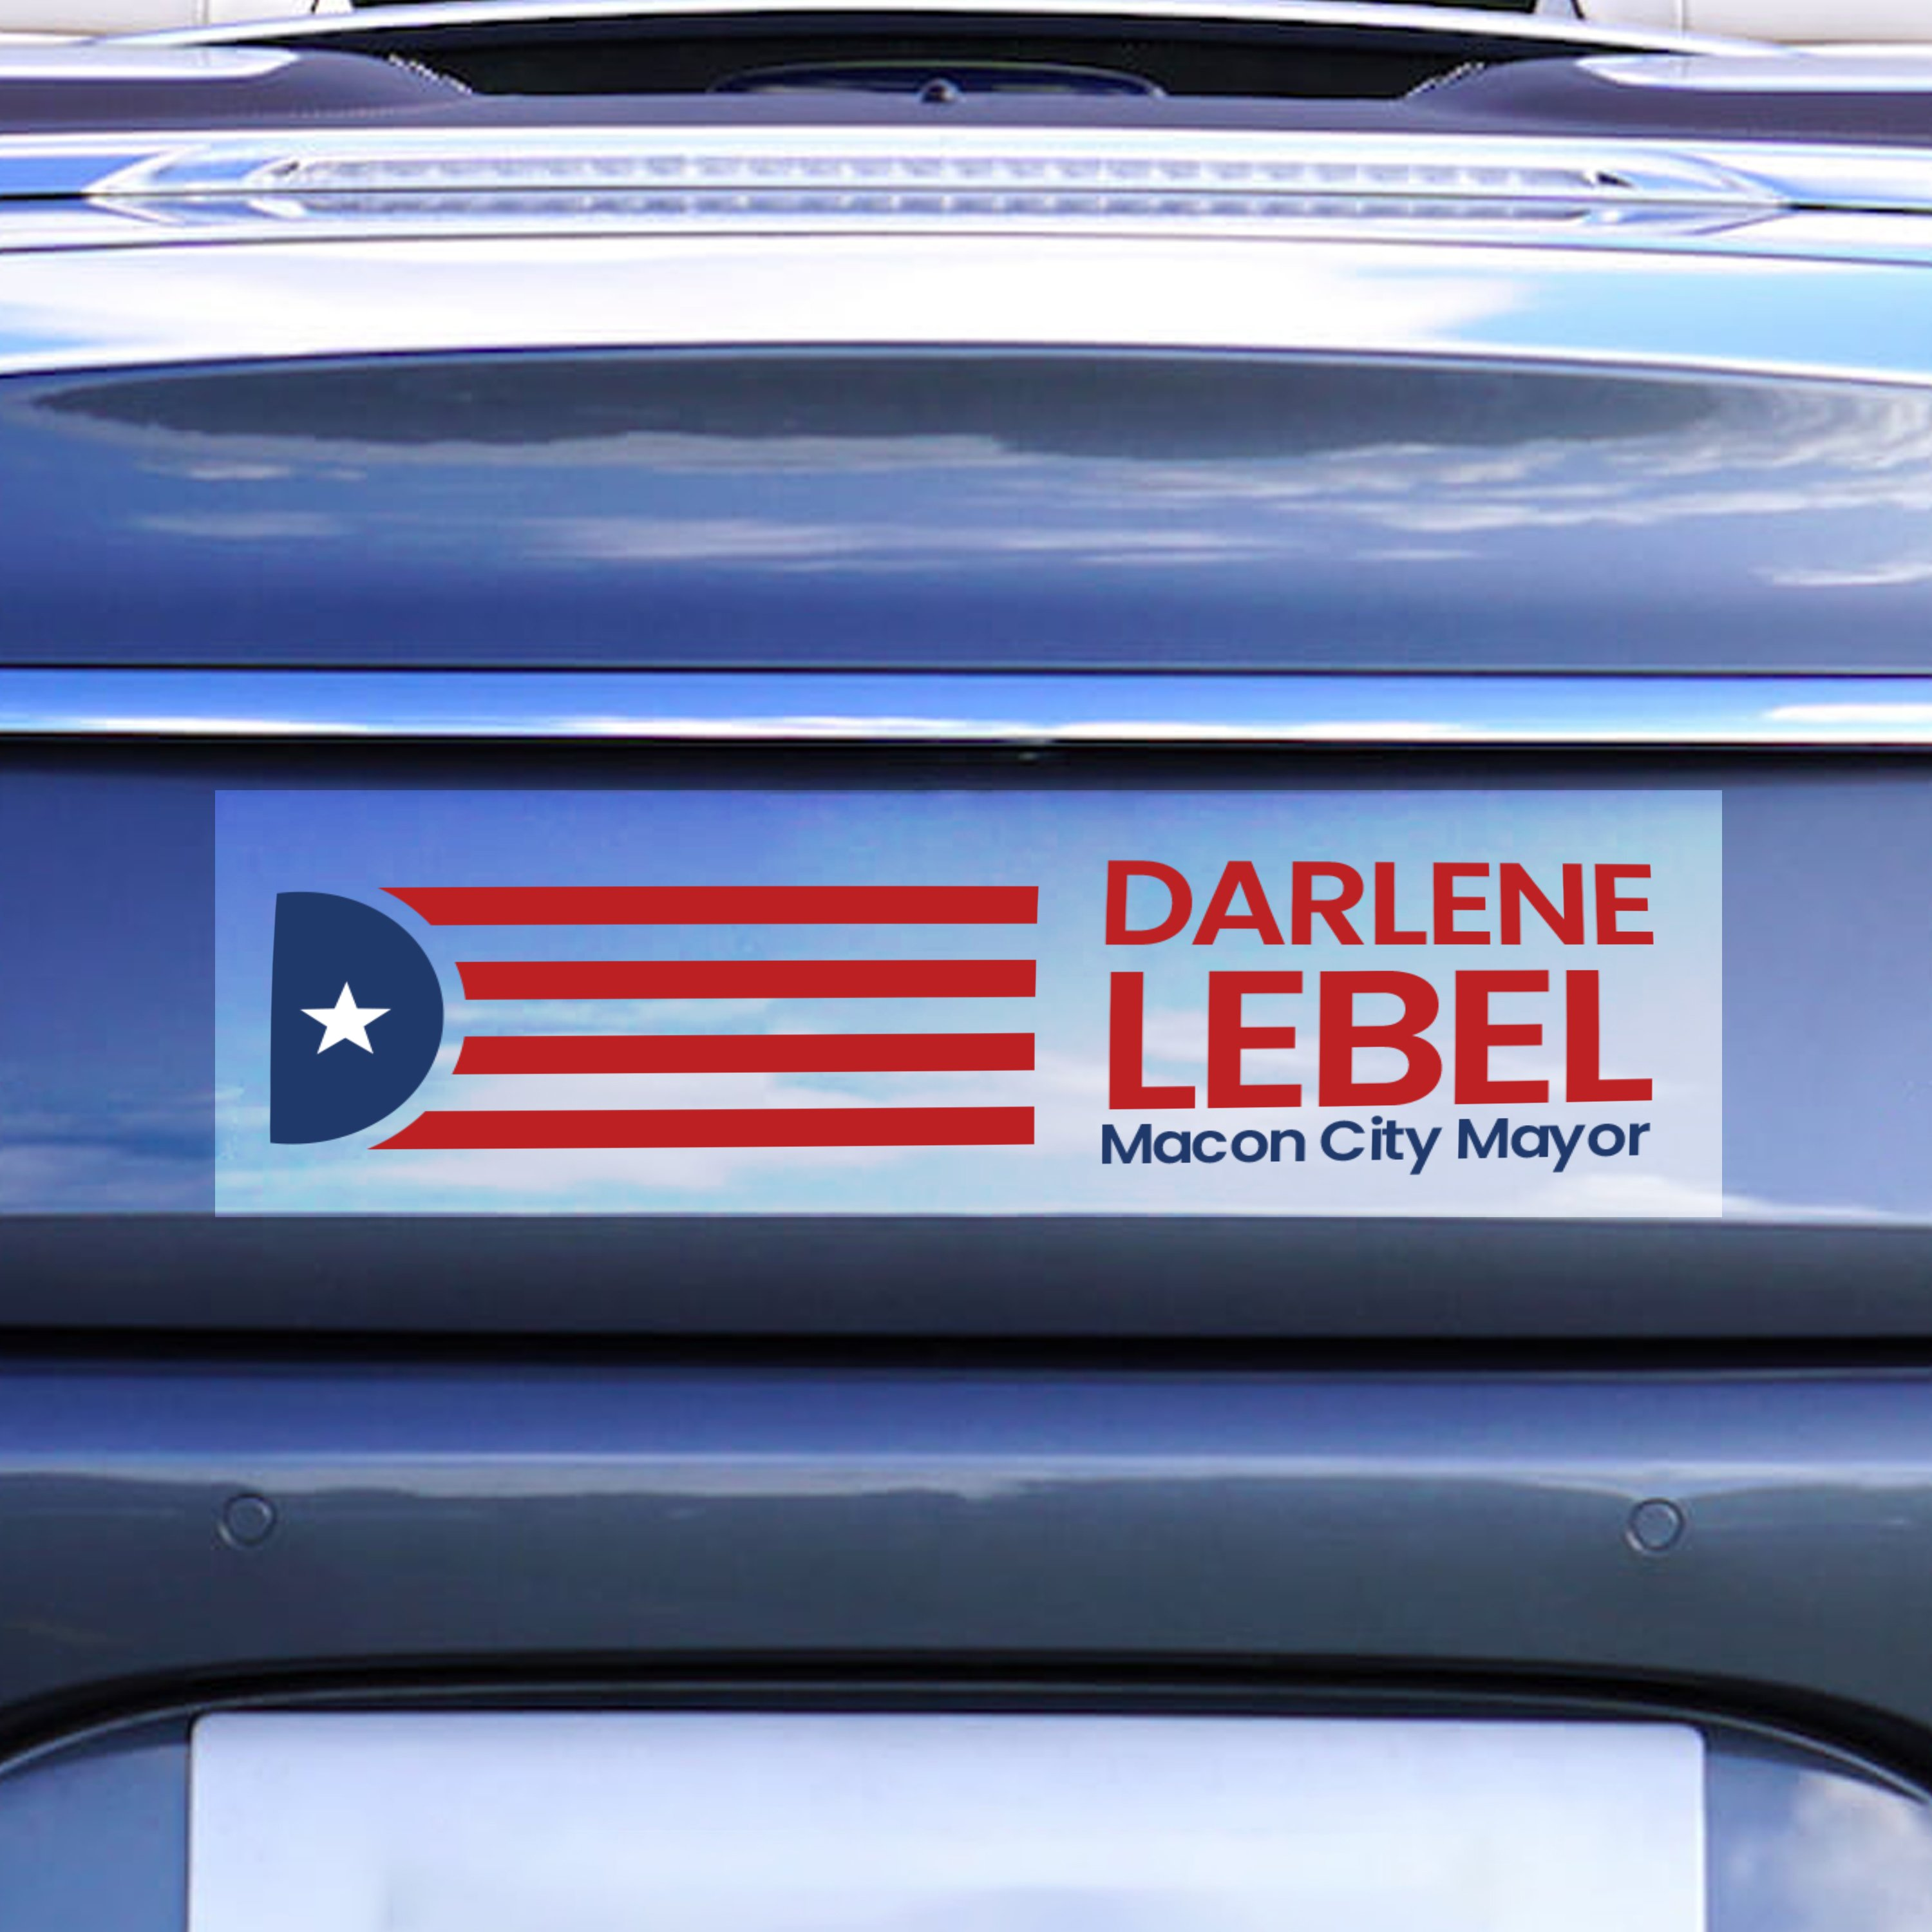 Professional Automotive Bumper Stickers With Vinyl Matte Stickers for Every Campaign - Political Stickers